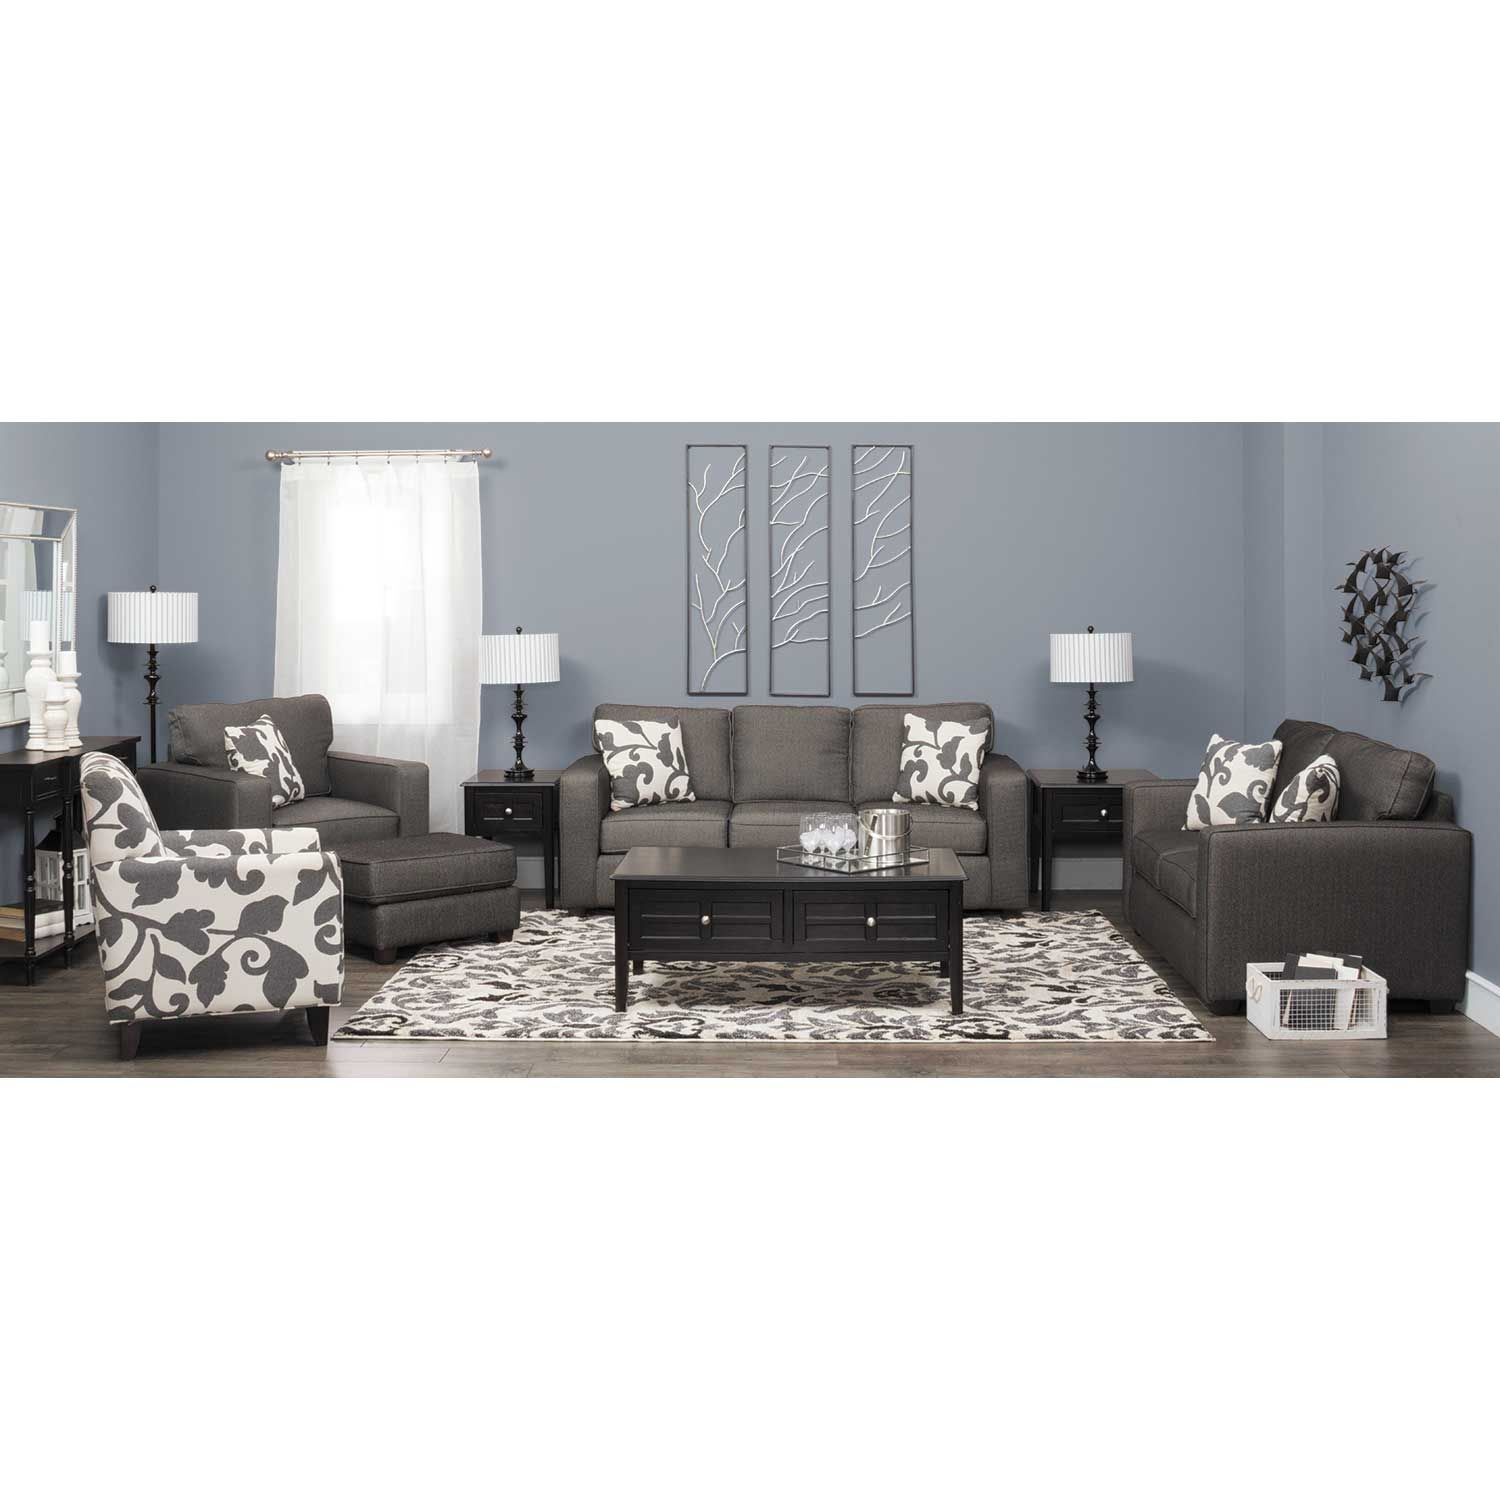 Marcie yx Accent Chair B 702AC American Furniture Warehouse